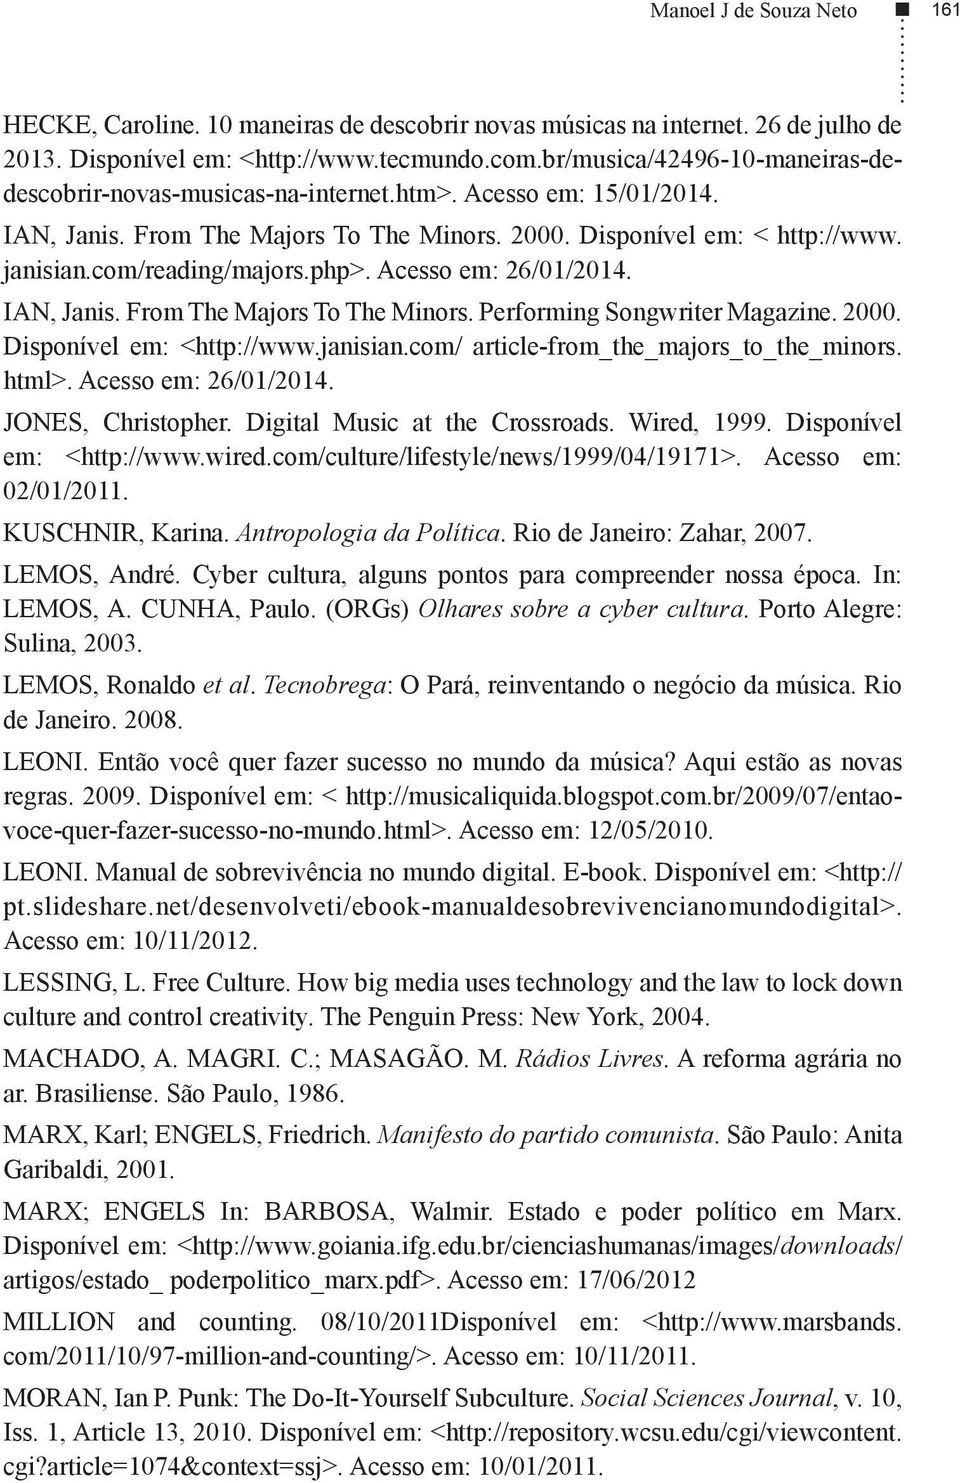 com/reading/majors.php>. Acesso em: 26/01/2014. IAN, Janis. From The Majors To The Minors. Performing Songwriter Magazine. 2000. Disponível em: <http://www.janisian.